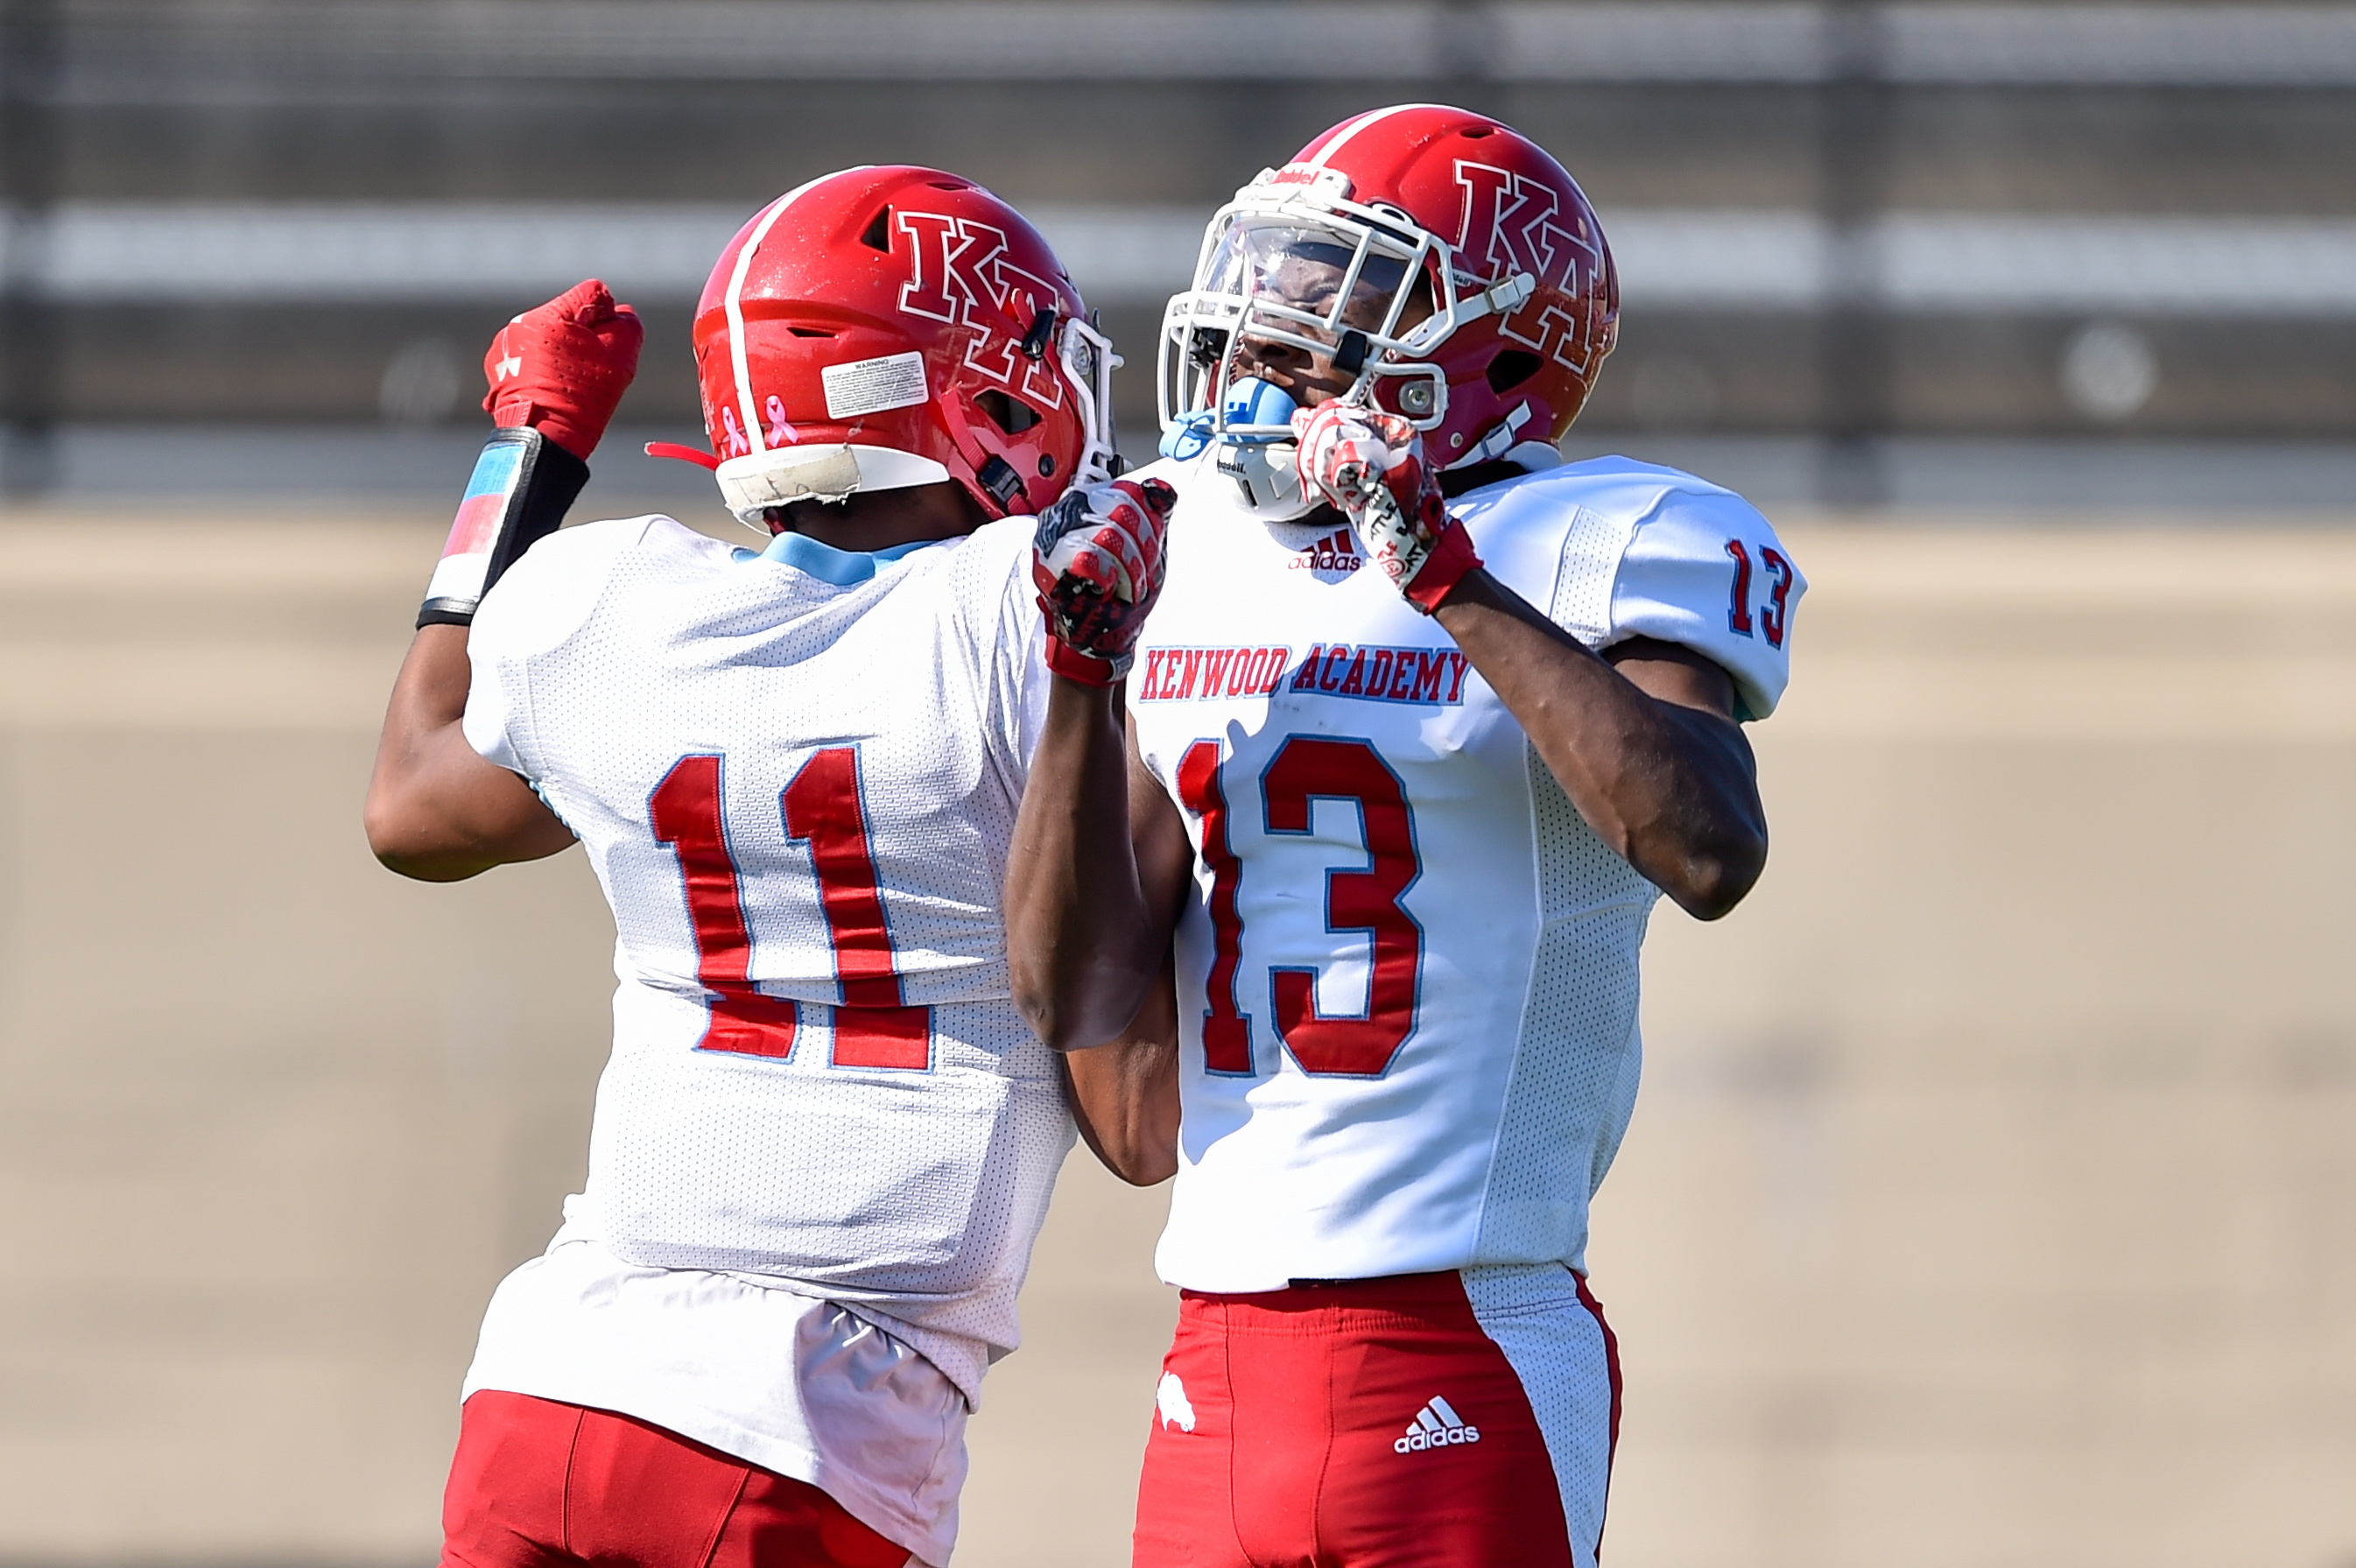 Kenwood's Kahlil Tate (11) and Omarion Lewis (13) celebrate Tate's touchdown against Simeon.